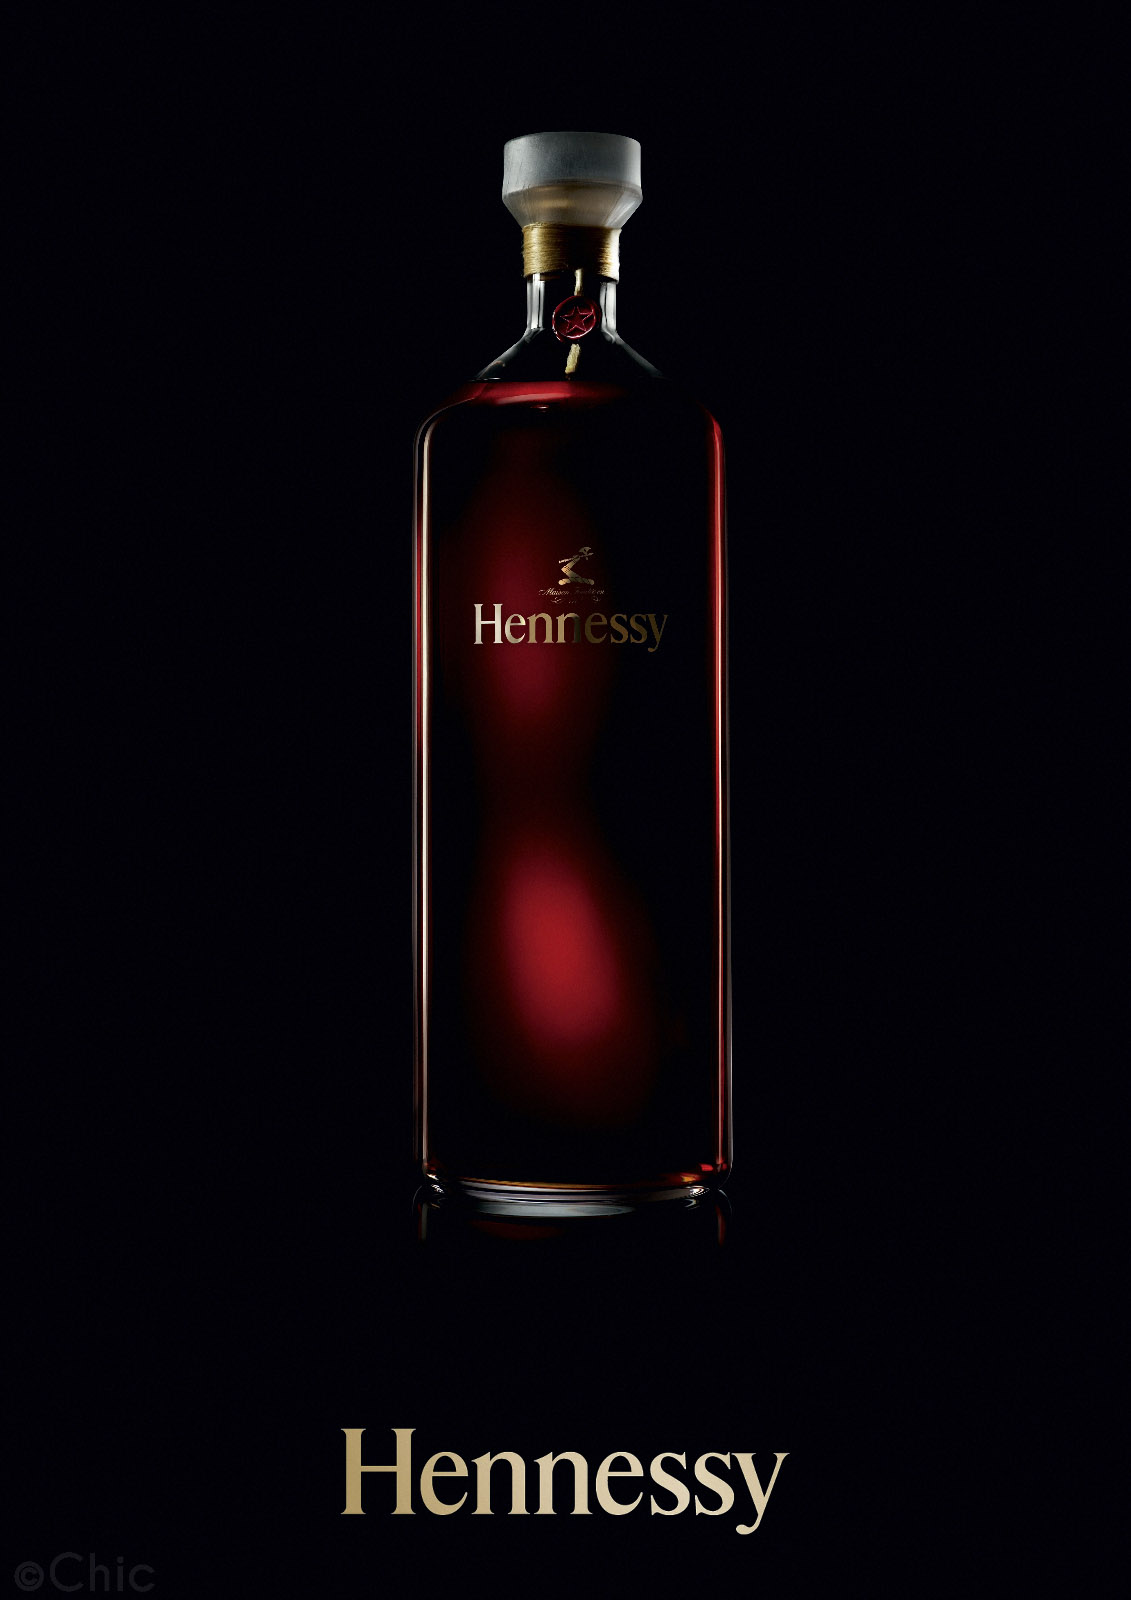 Hennessy-creation particuliere3